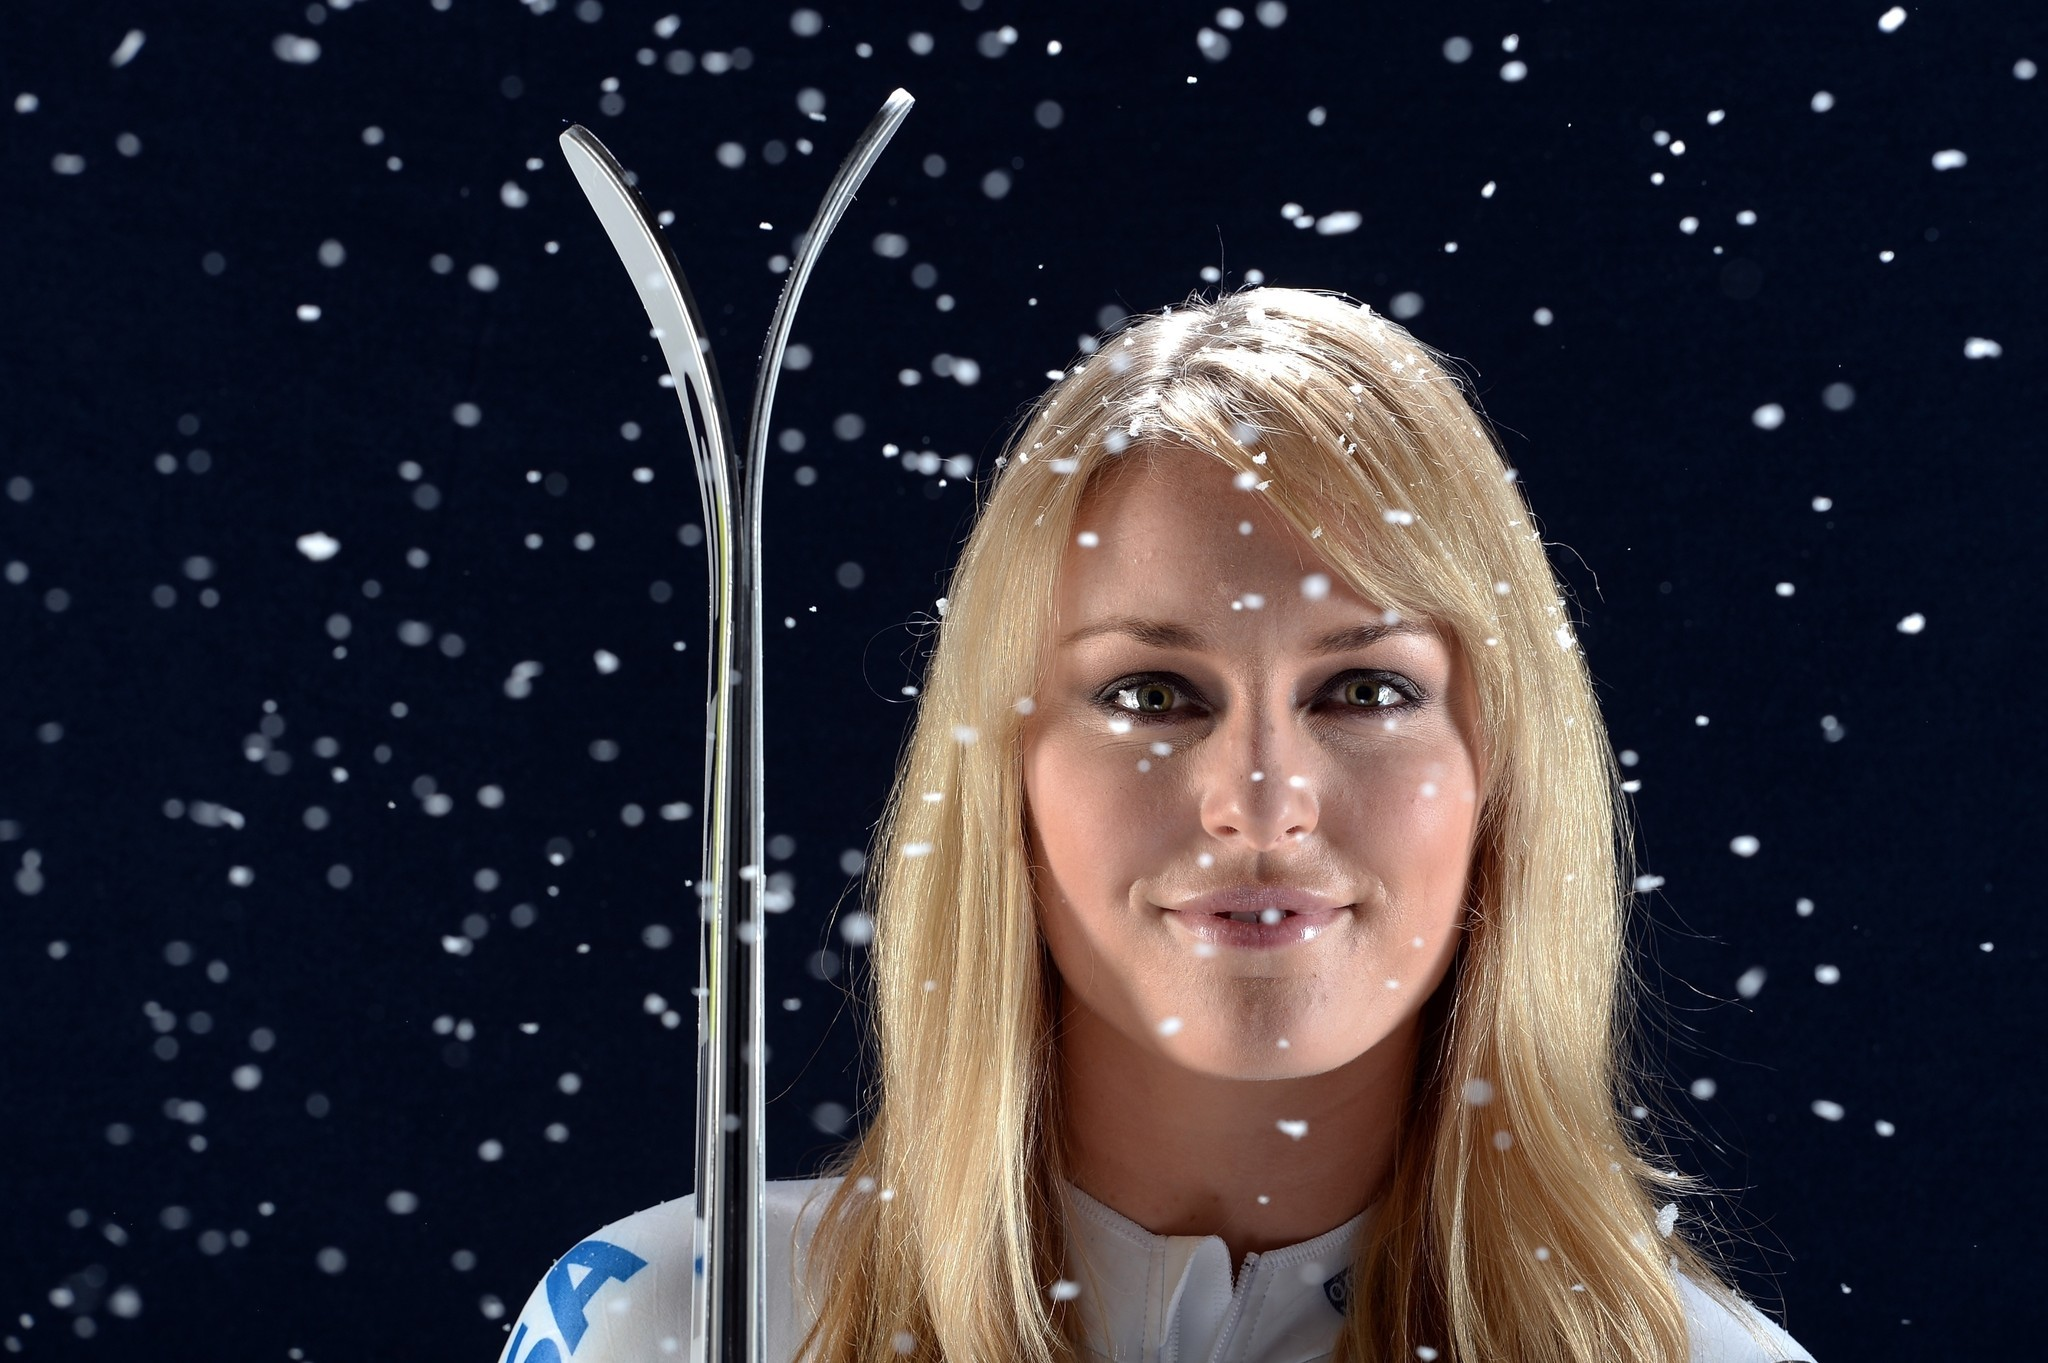 Lindsey Vonn takes on Youth Olympics role